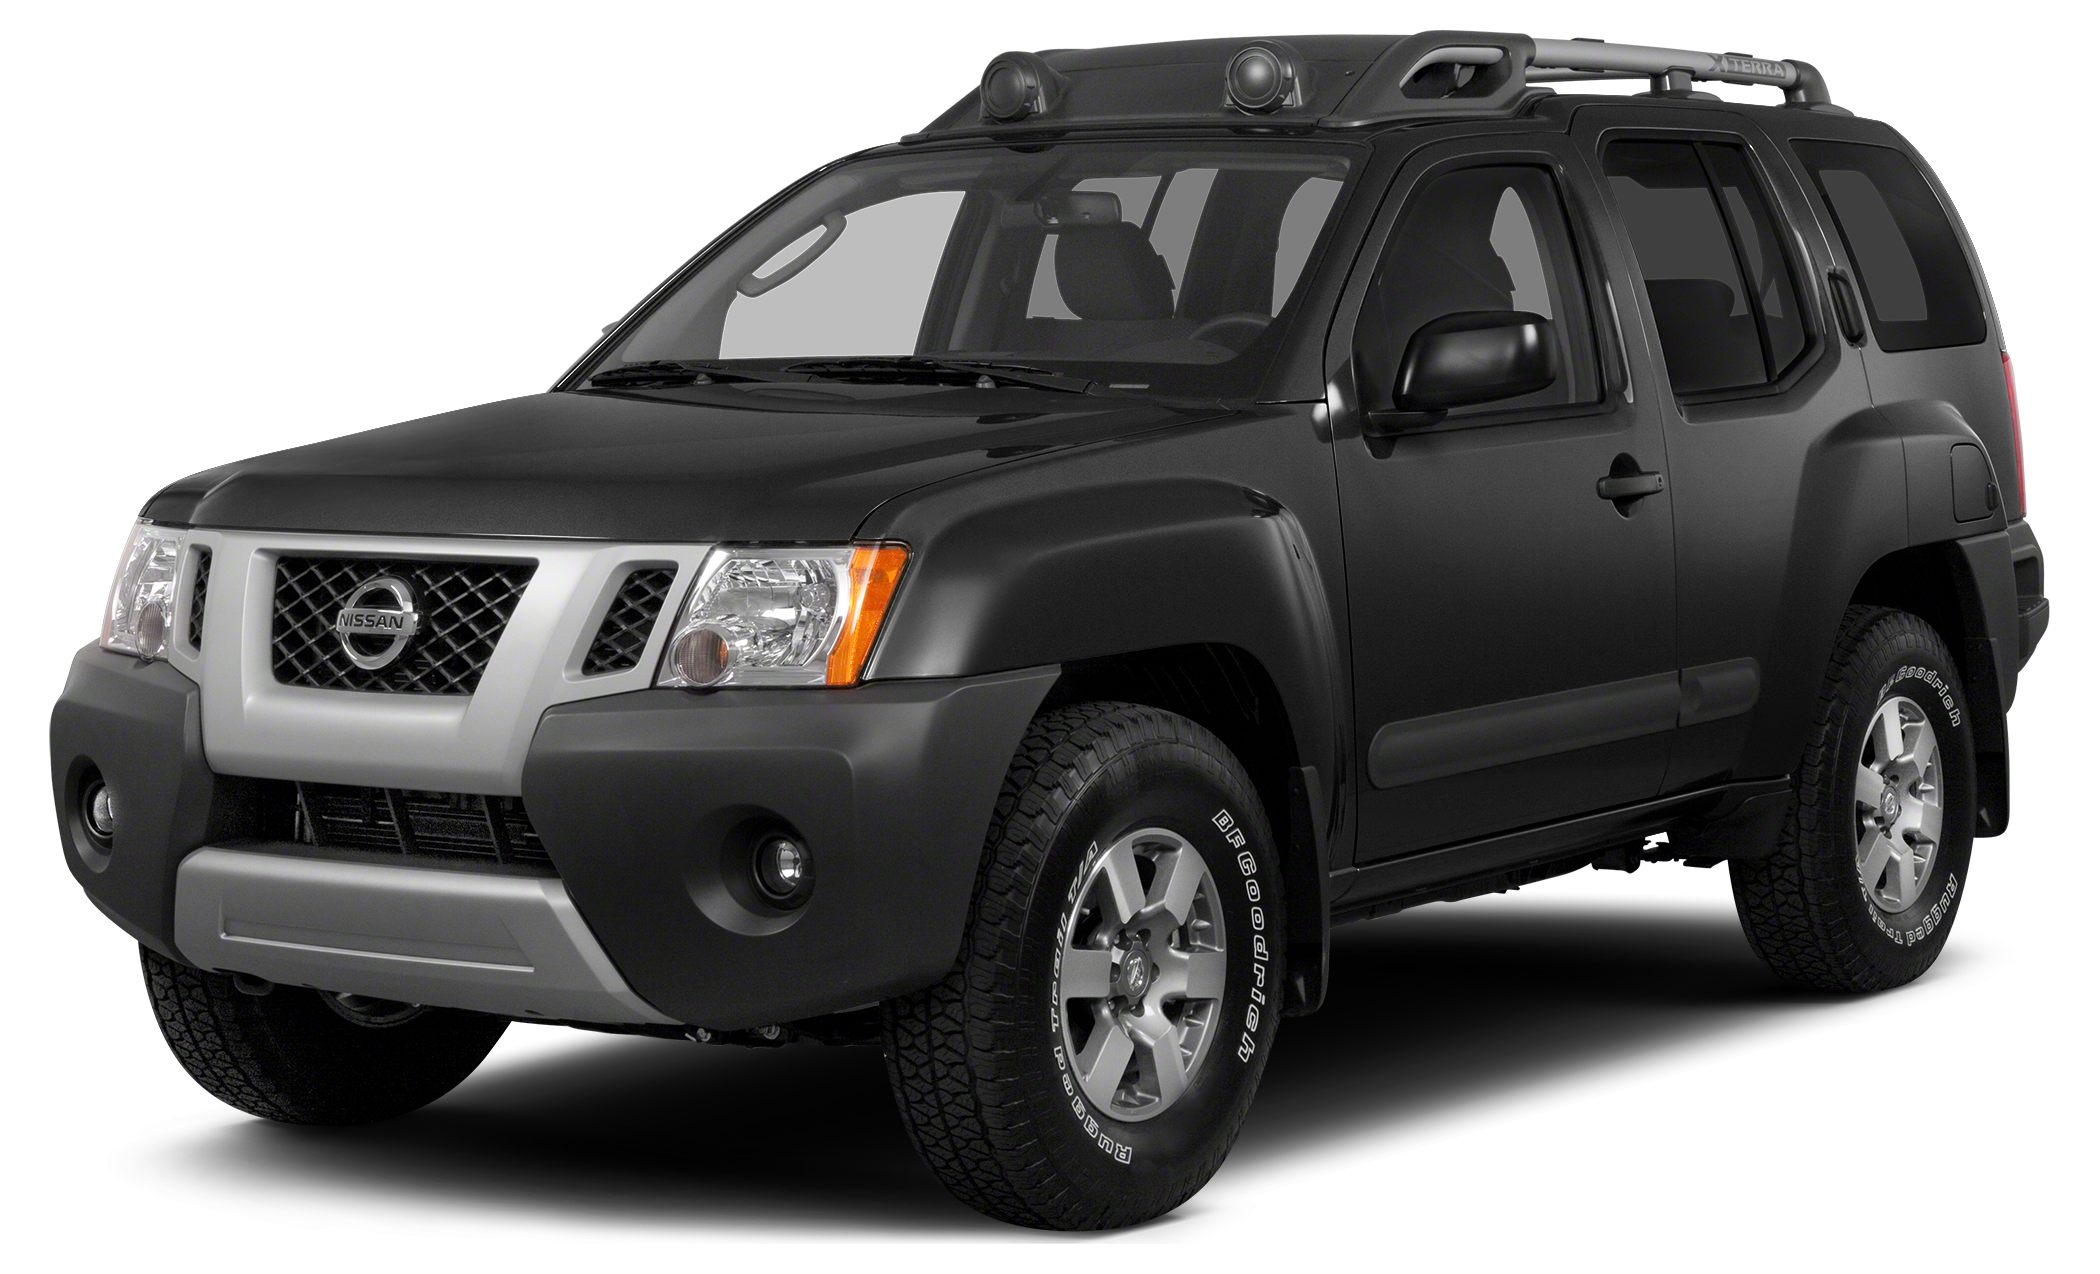 2013 Nissan Xterra S One owner Black beauty bought new and serviced here Just traded on a Pathfind